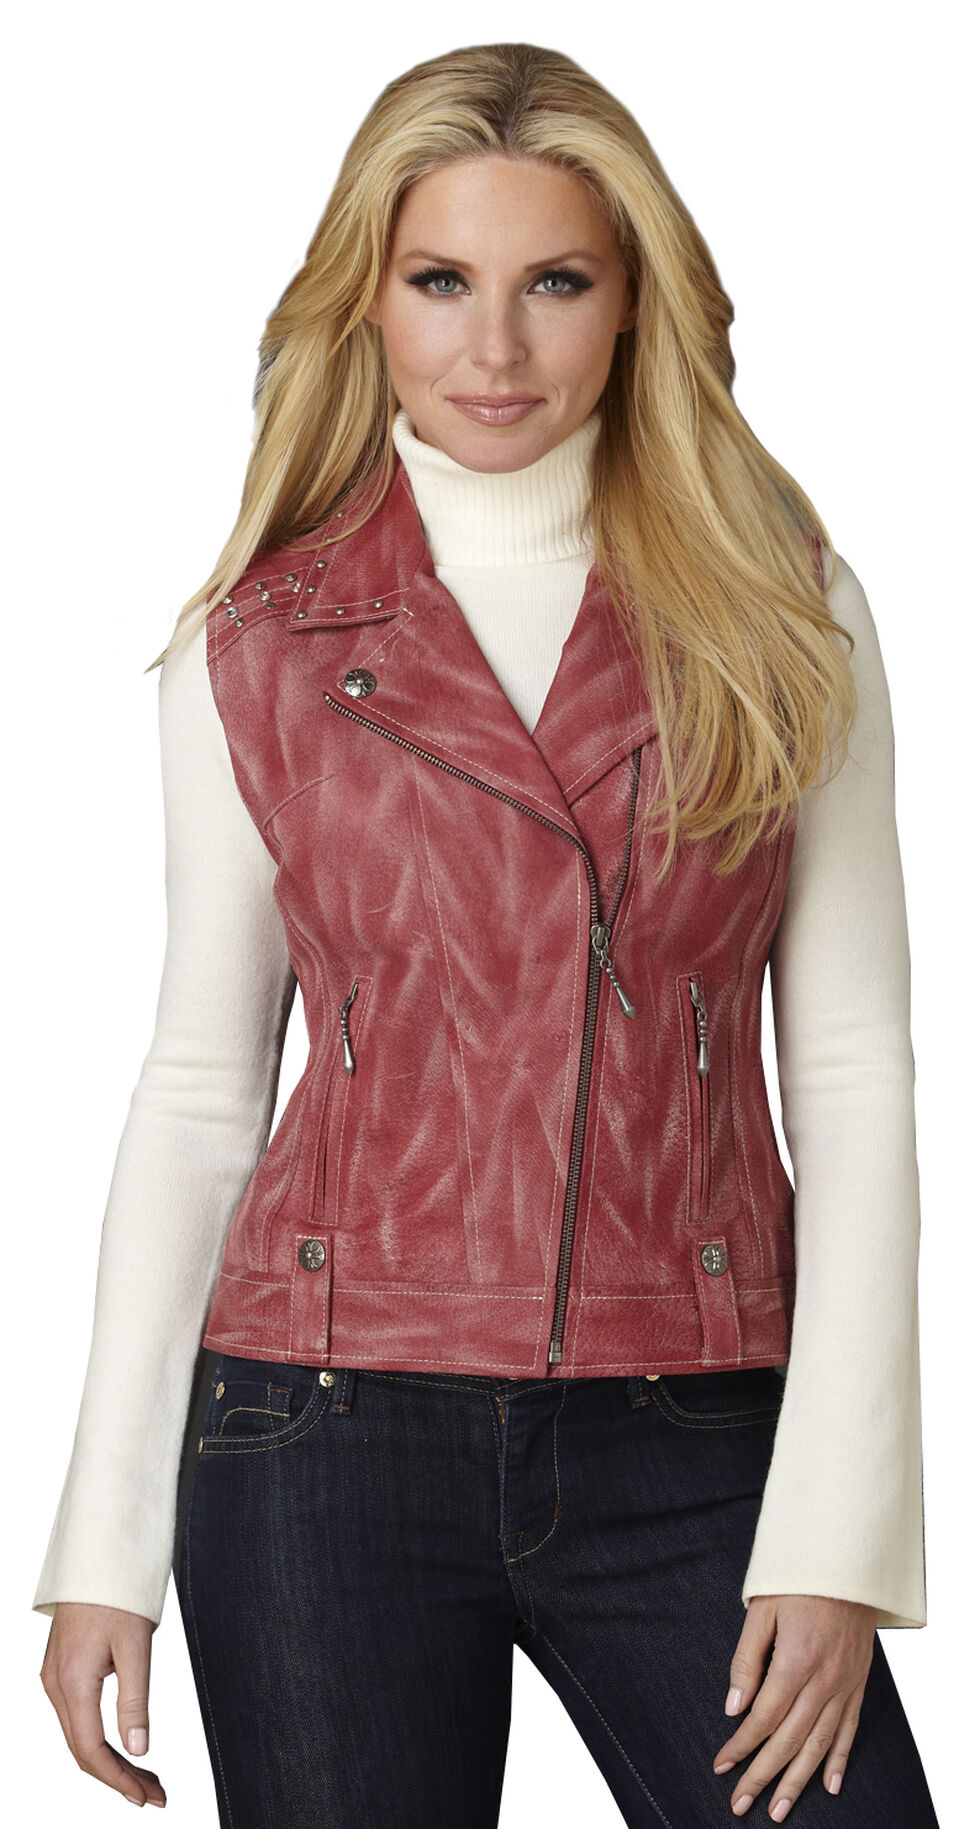 Cripple Creek Women's Distressed Red Studded Leather Moto Vest, Red, hi-res